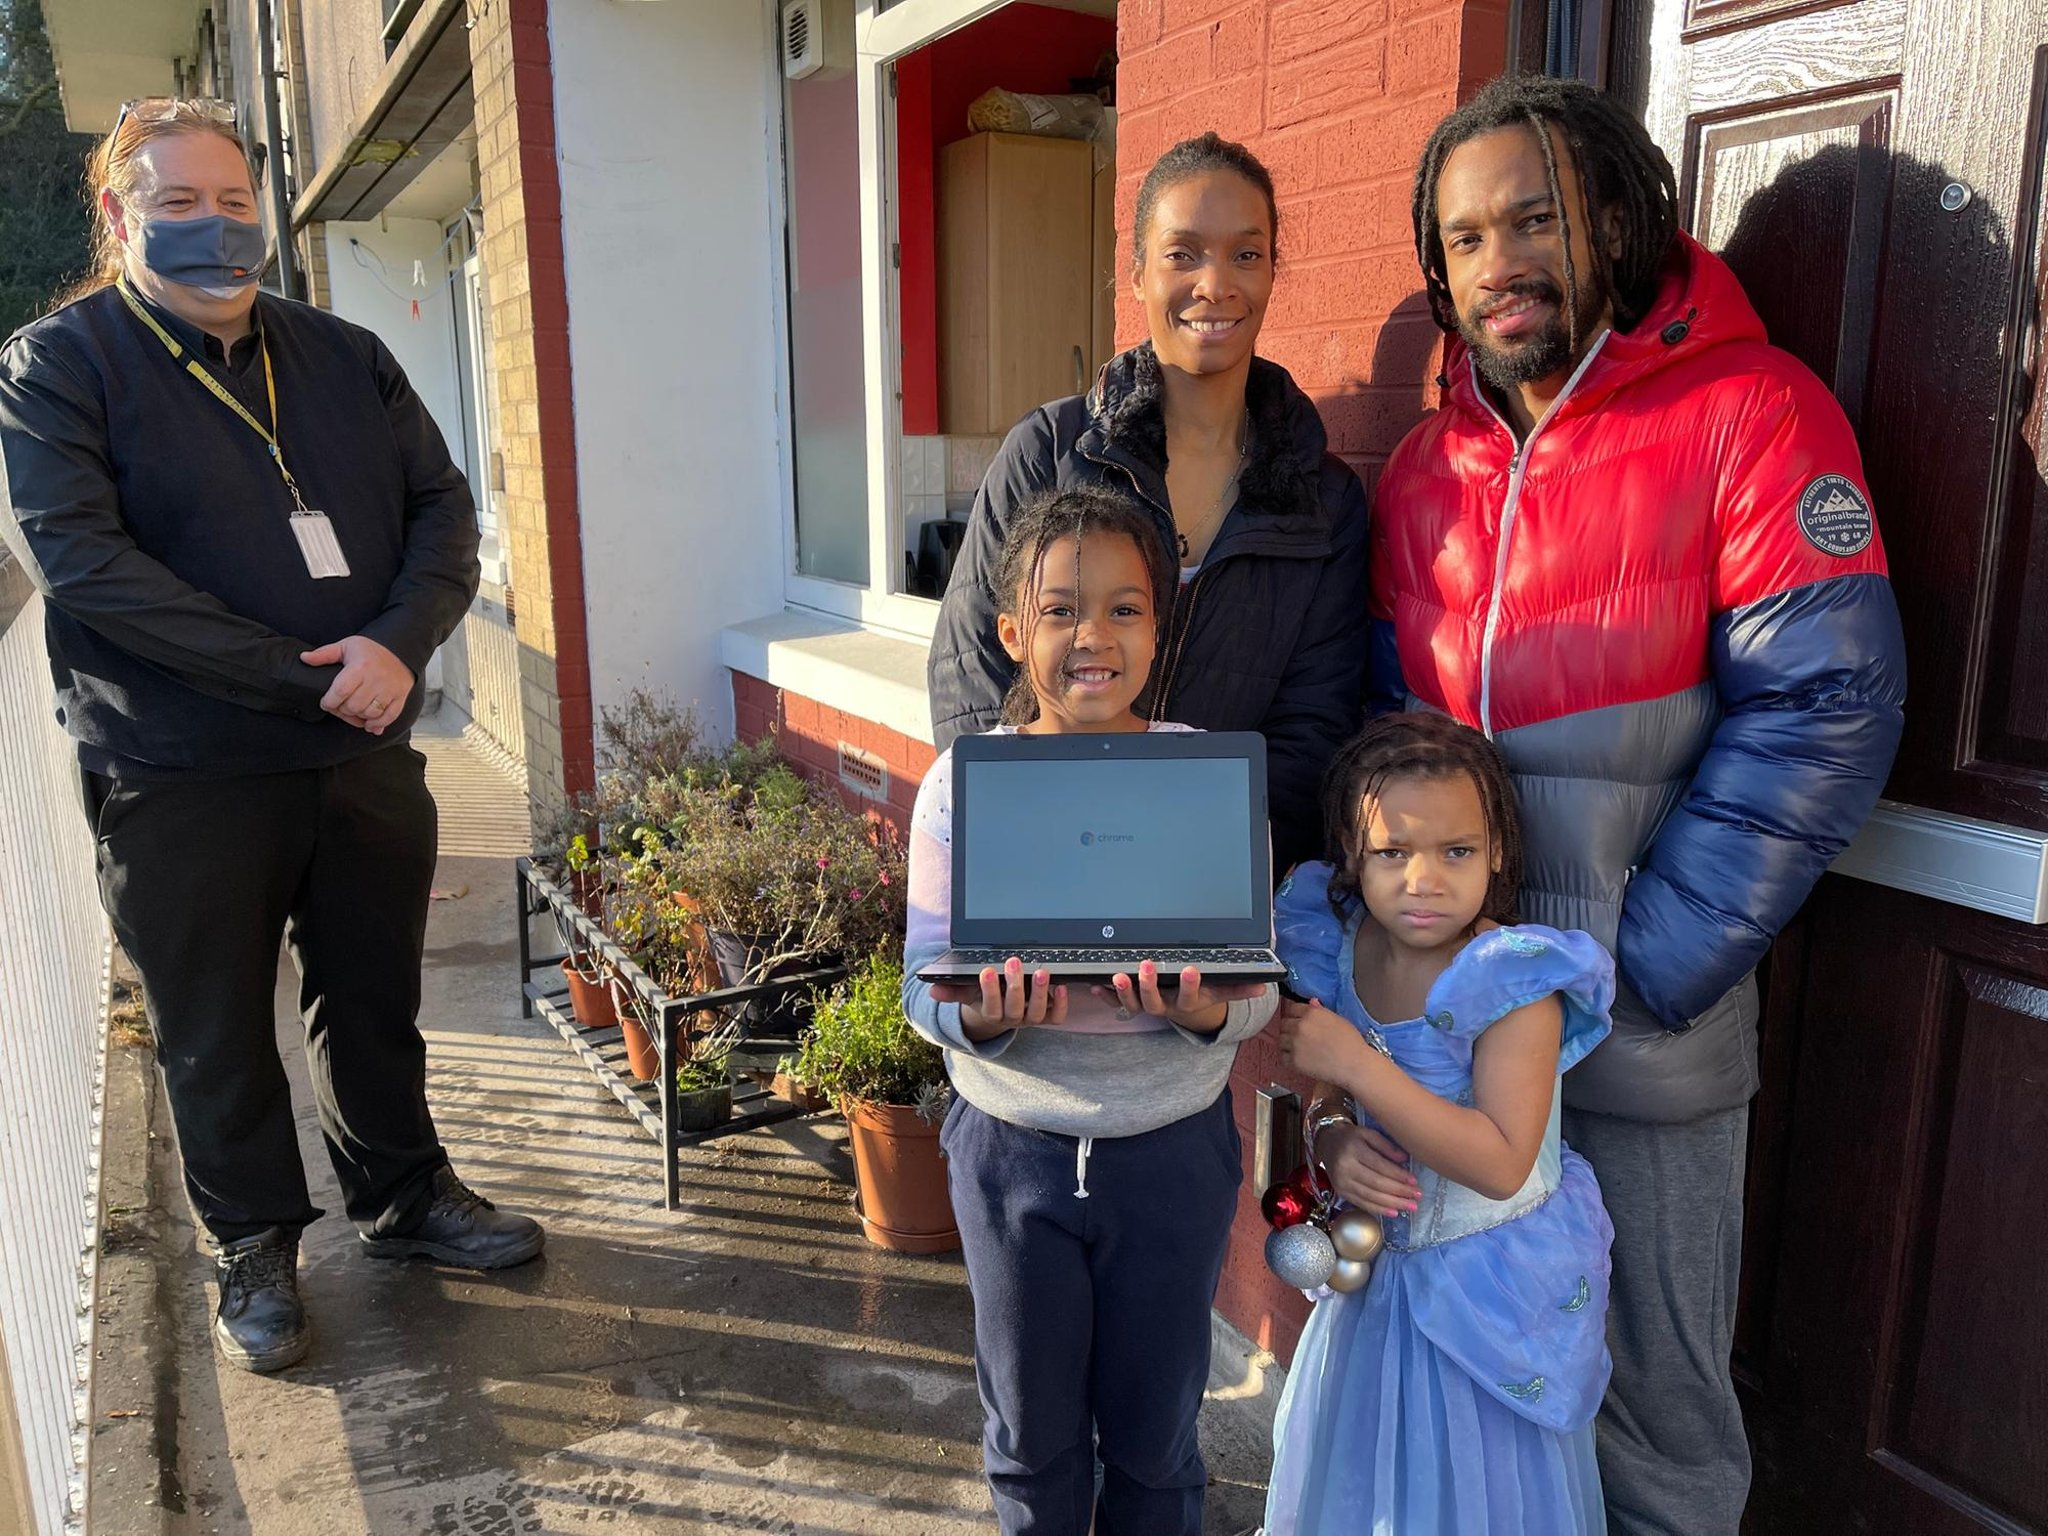 Thousands of children across Sheffield to receive computers thanks to £1.5 million boost for laptop campaign